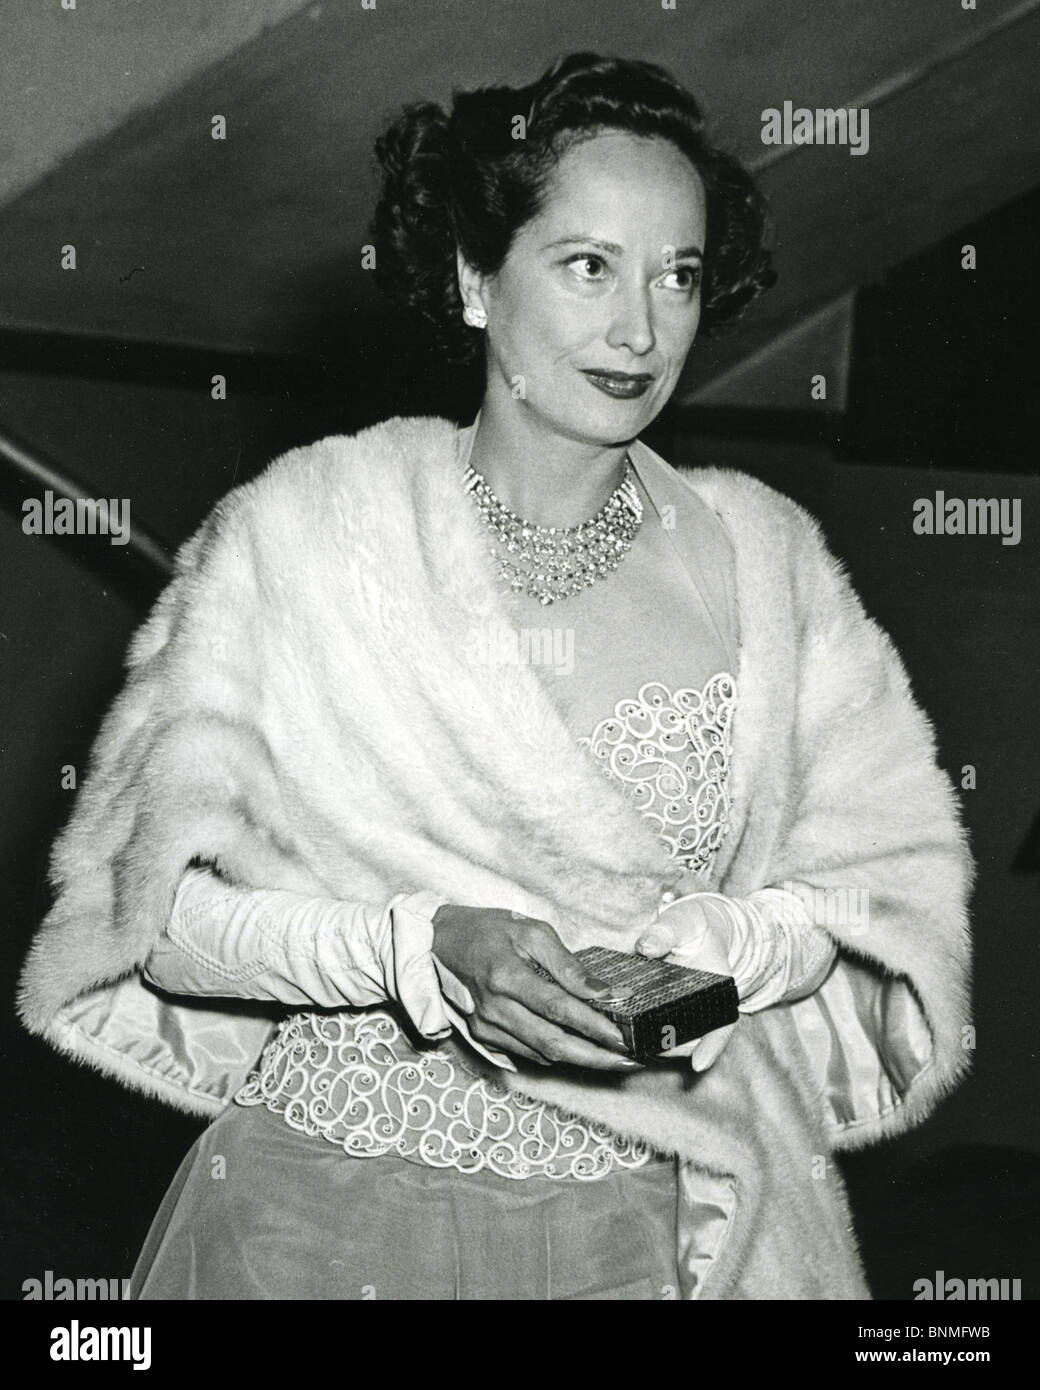 Forum on this topic: Mary Newland, merle-oberon/